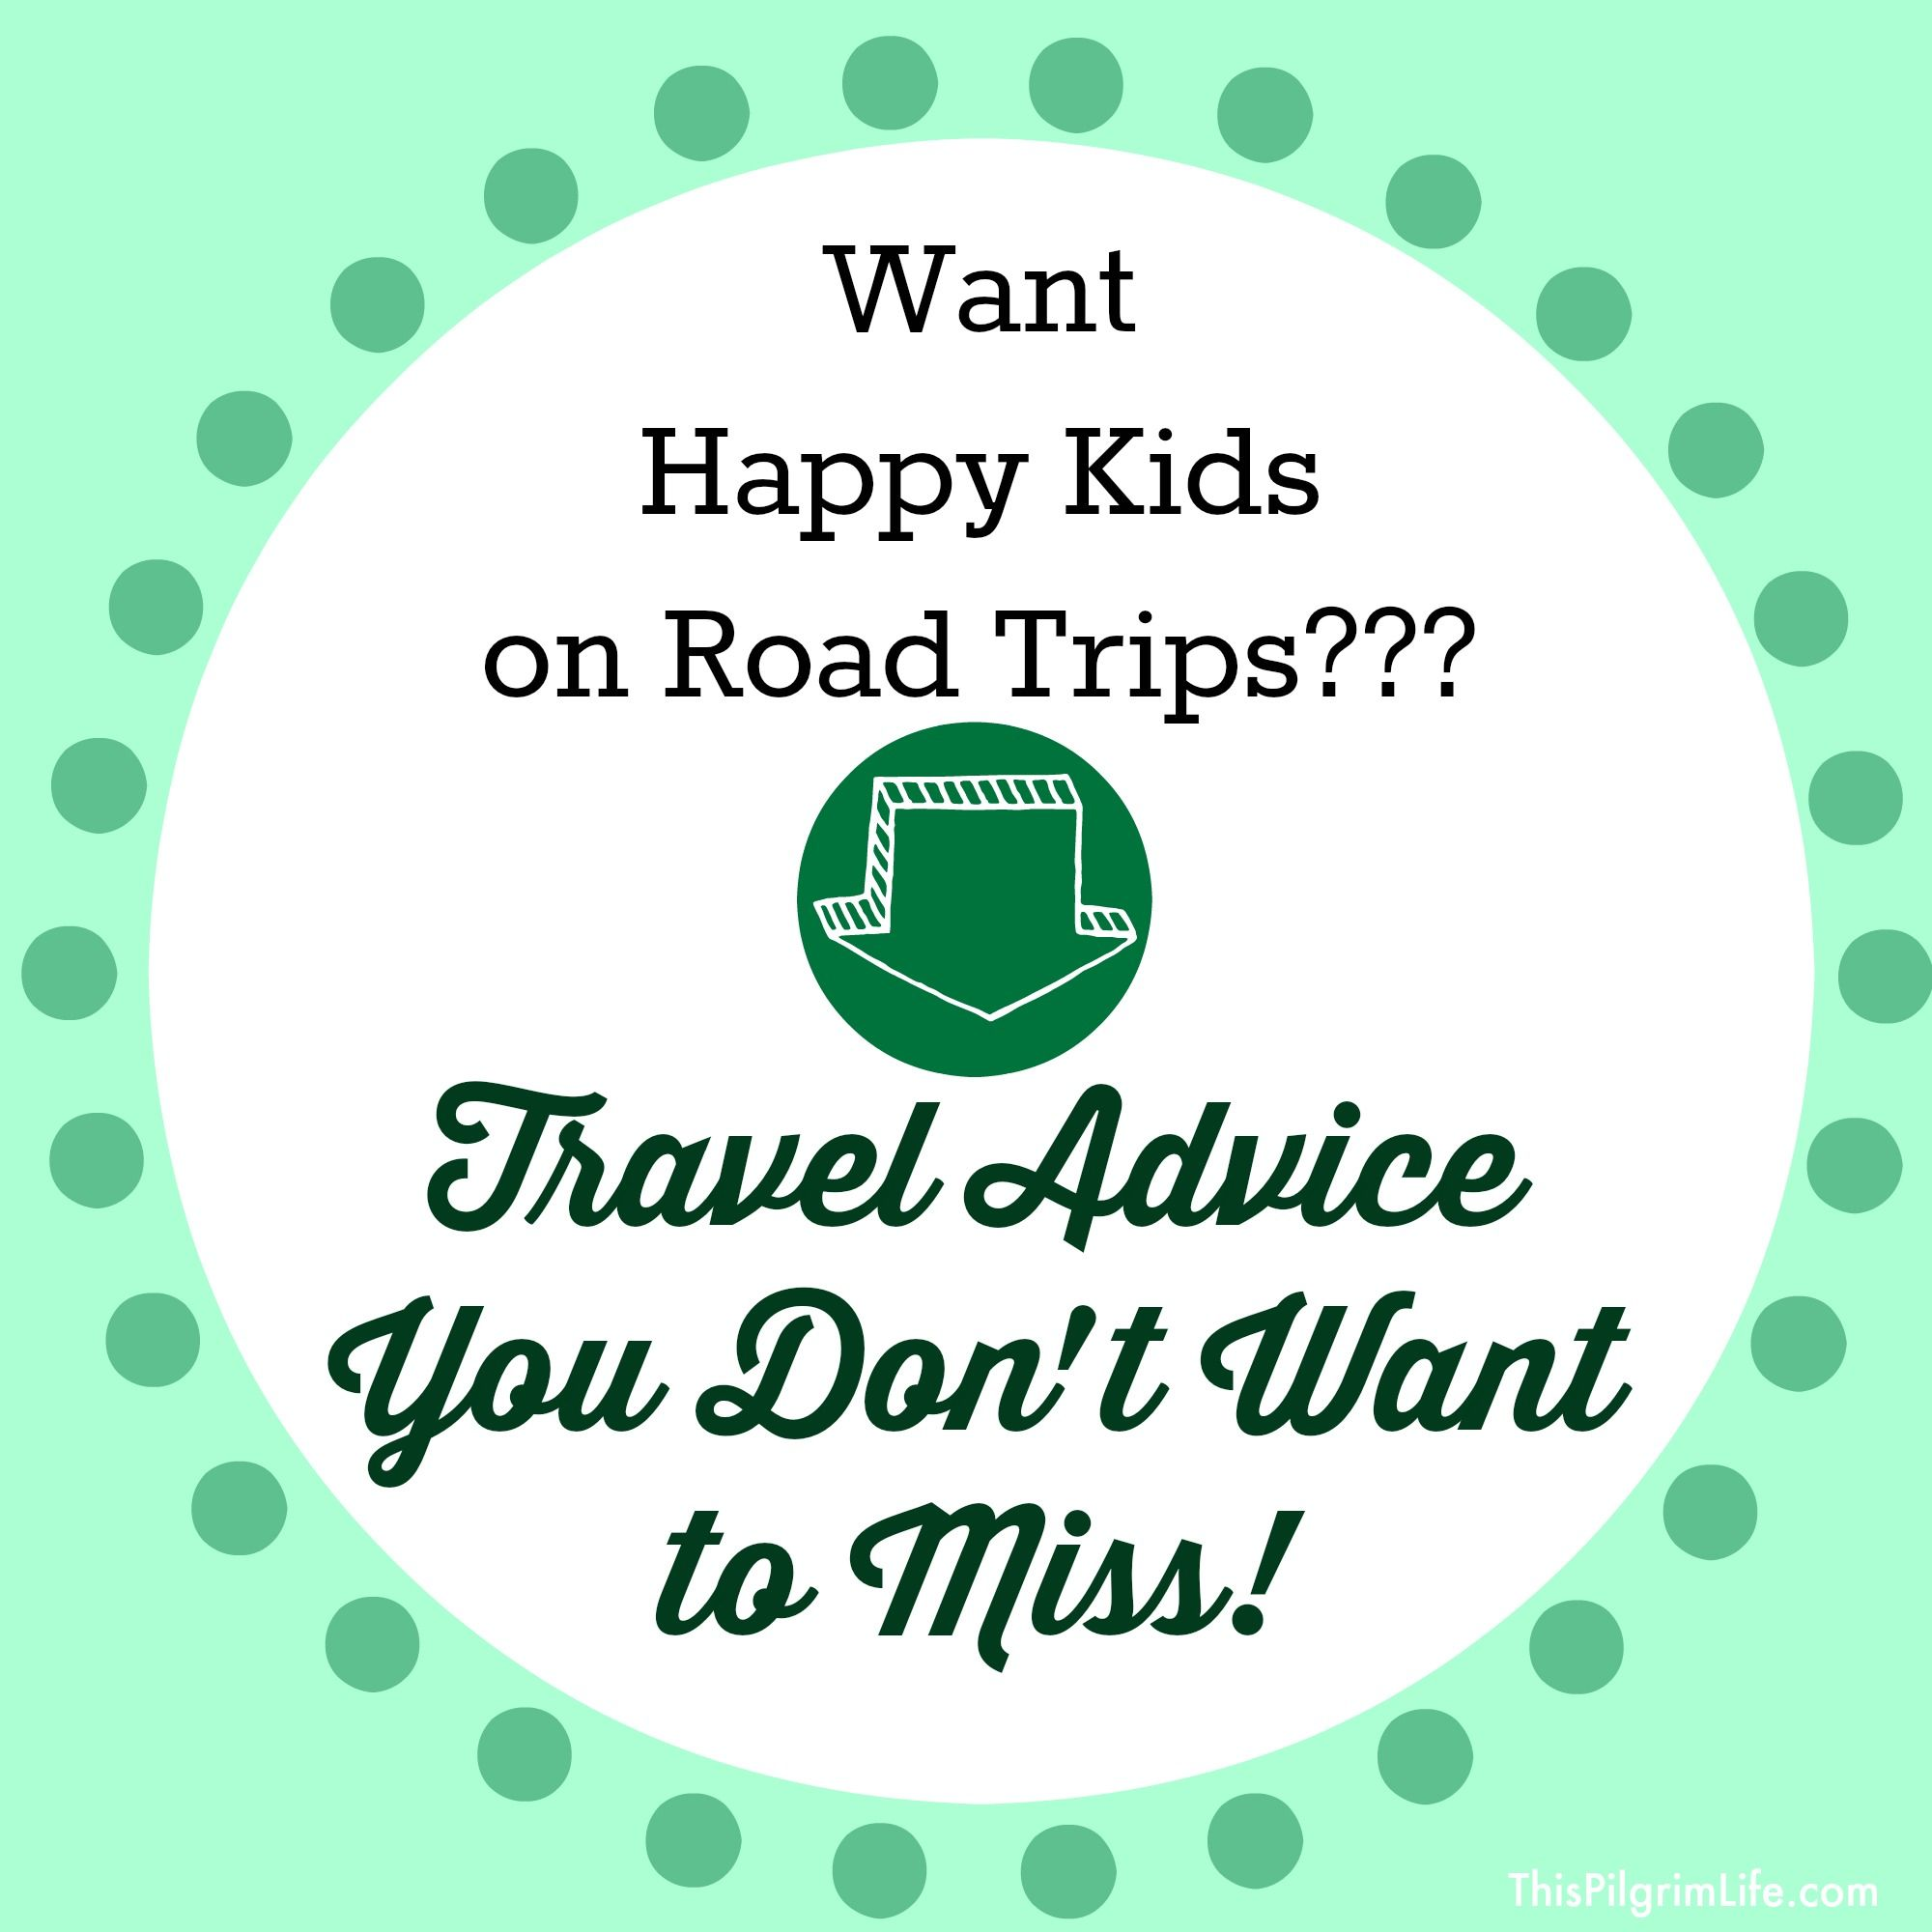 Want Happy Kids on Road Trips? Travel Advice You Don't Want to Miss! - This  Pilgrim  Life